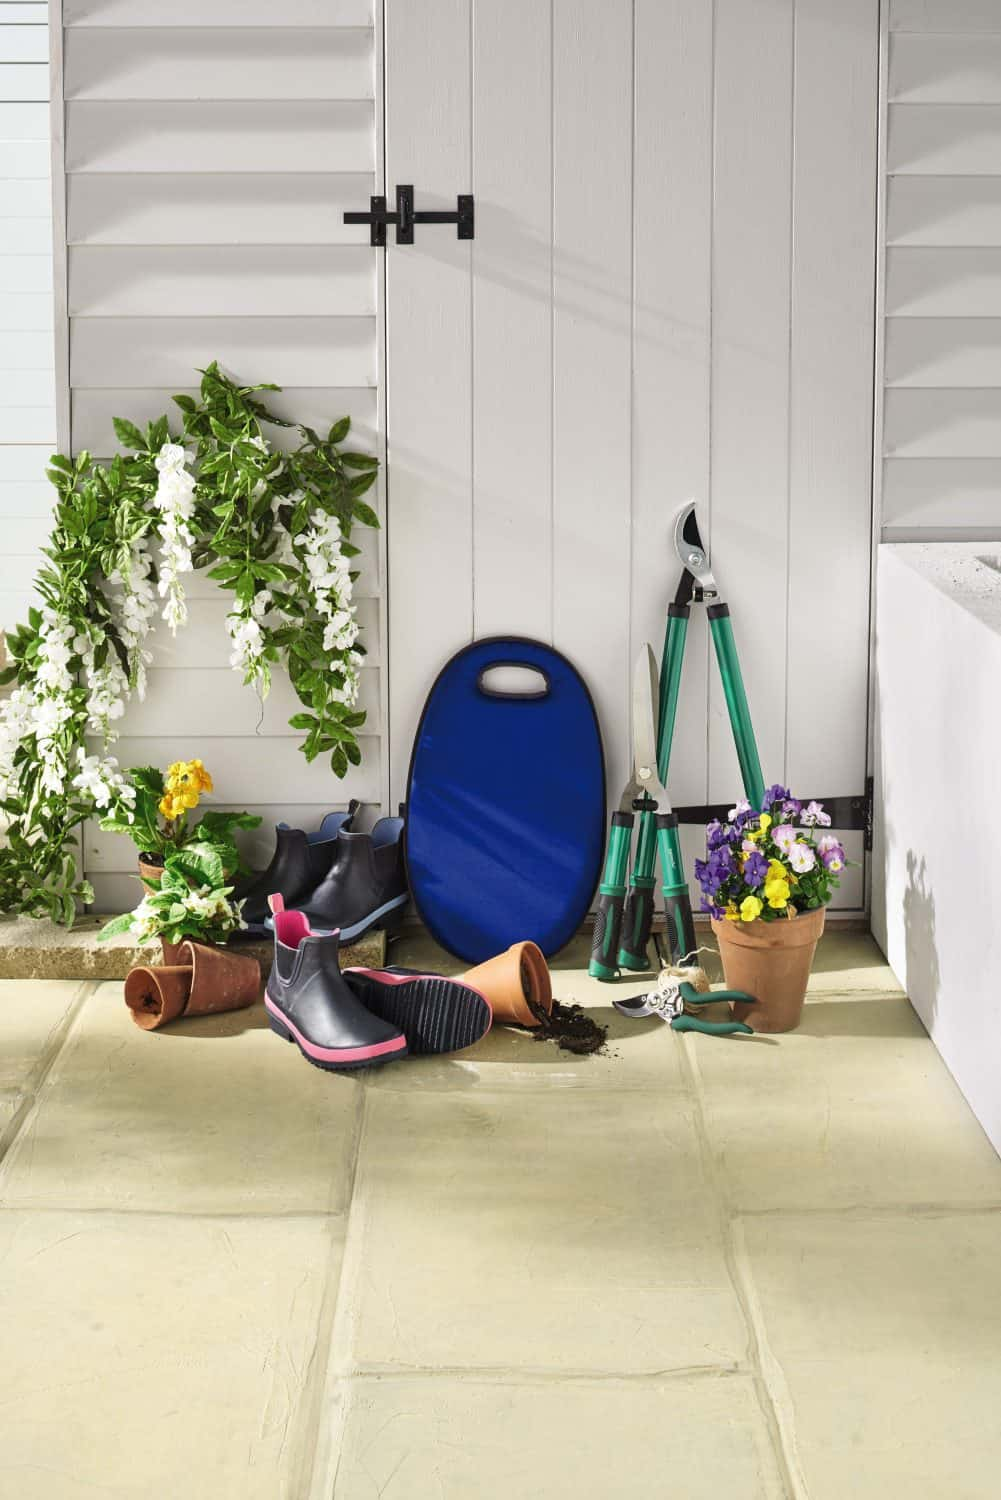 Win items from the new aldi summer garden range amy for Aldi gardening tools 2016